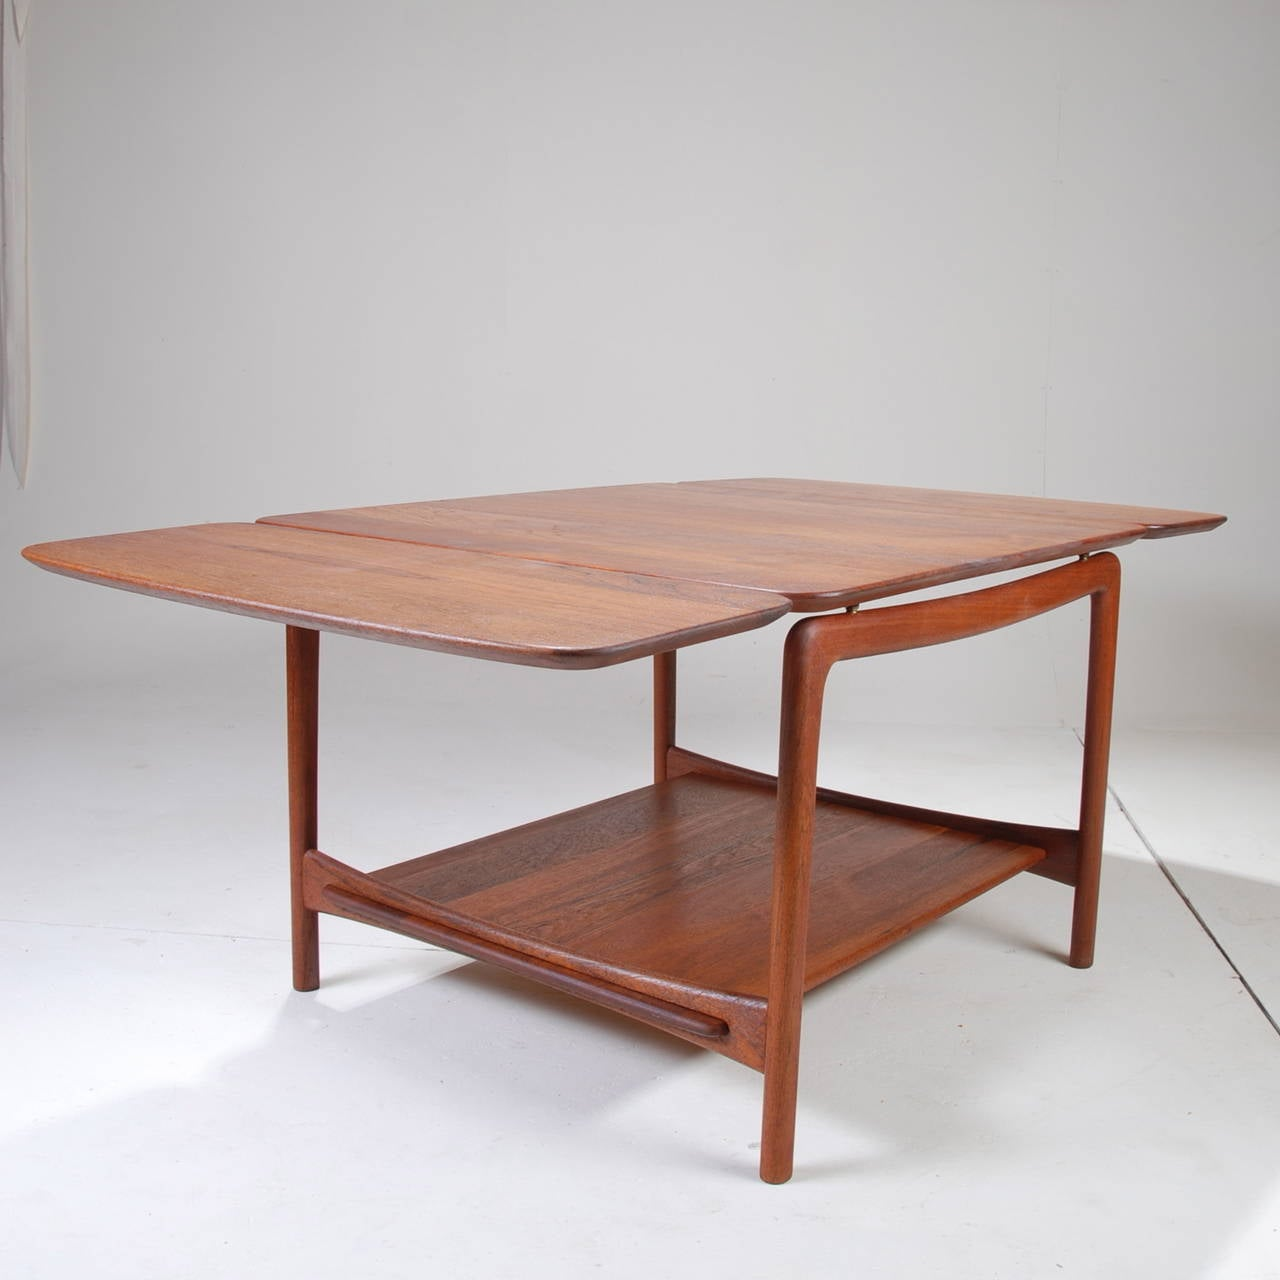 Solid teak drop leaf coffee table by peter hvidt for john stuart at 1stdibs Solid teak coffee table